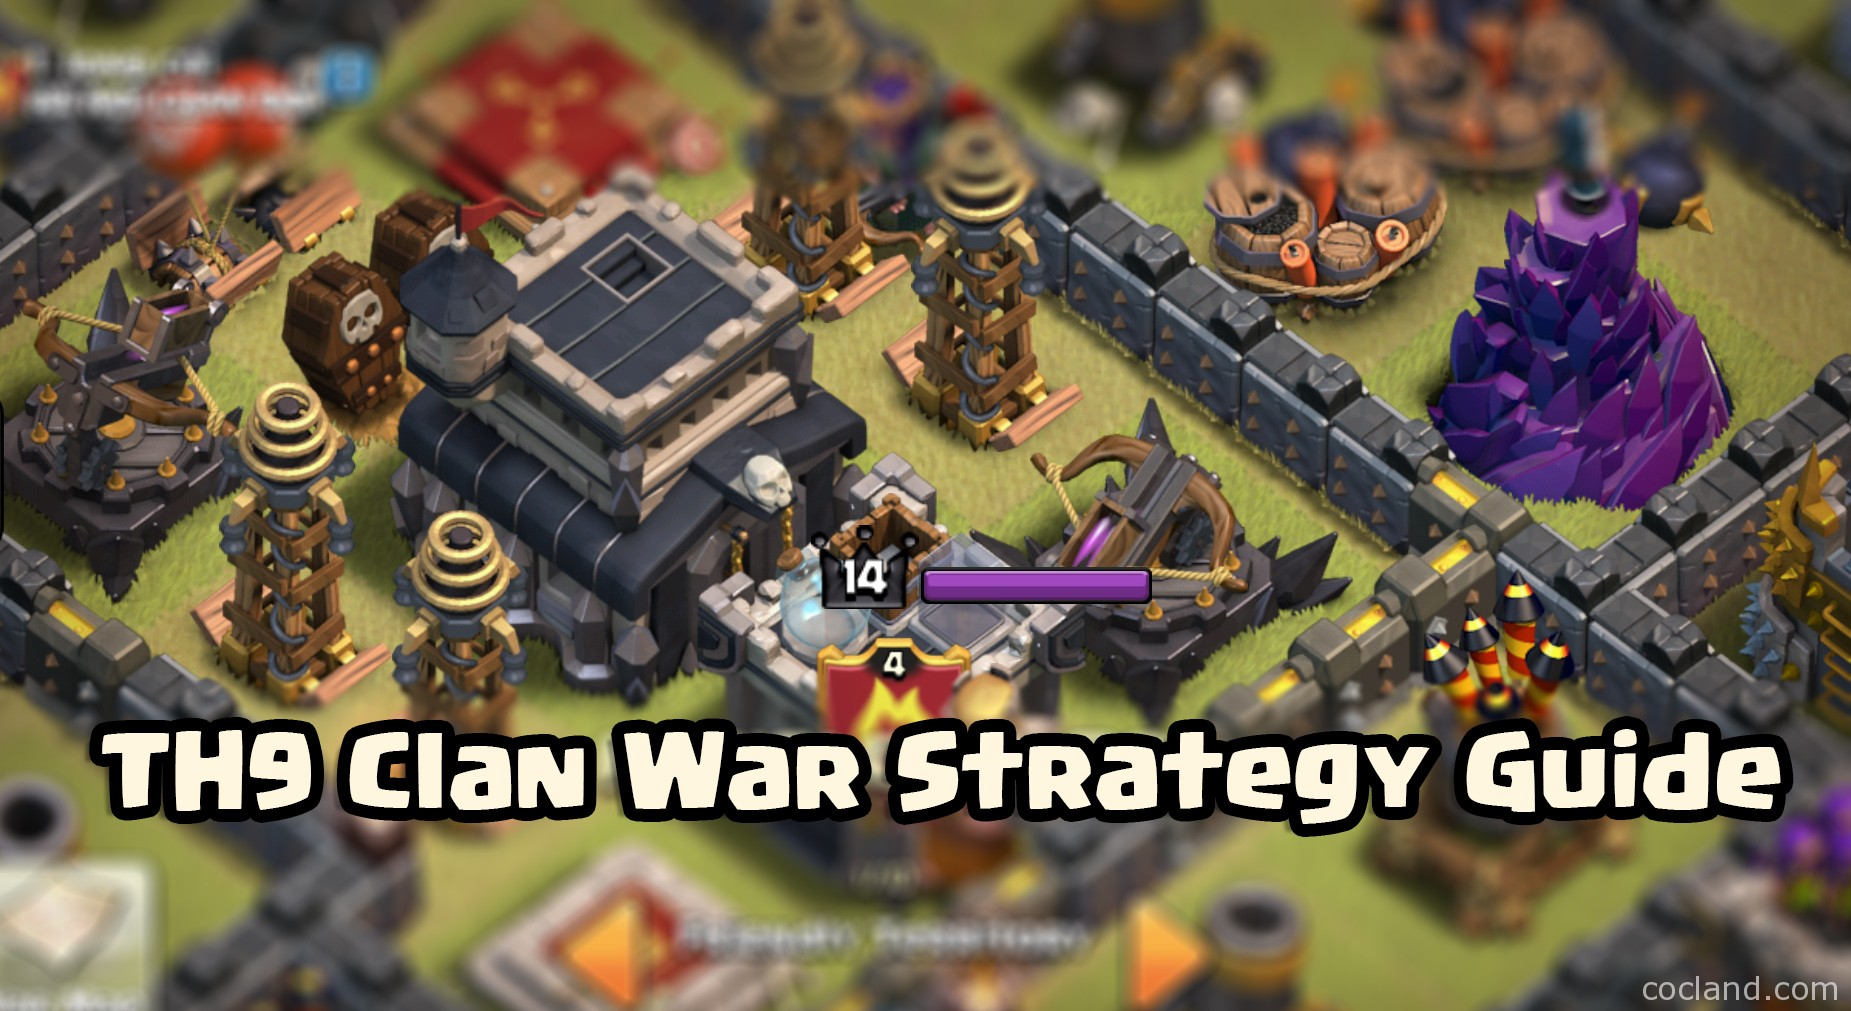 TH9 Clan War Strategy Guide